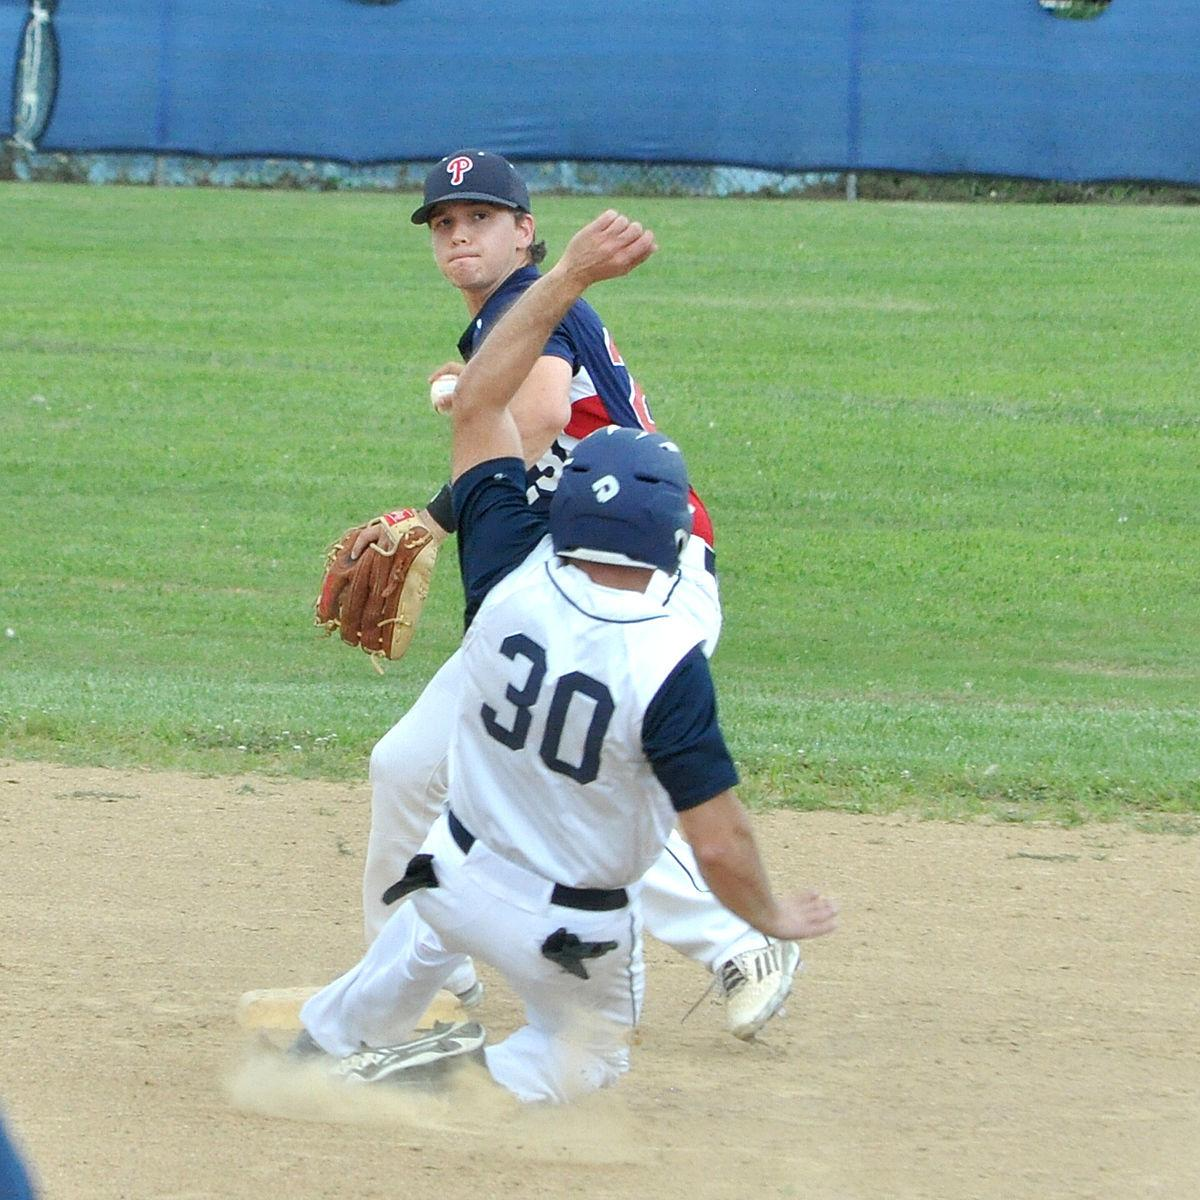 Frank forceout at second base